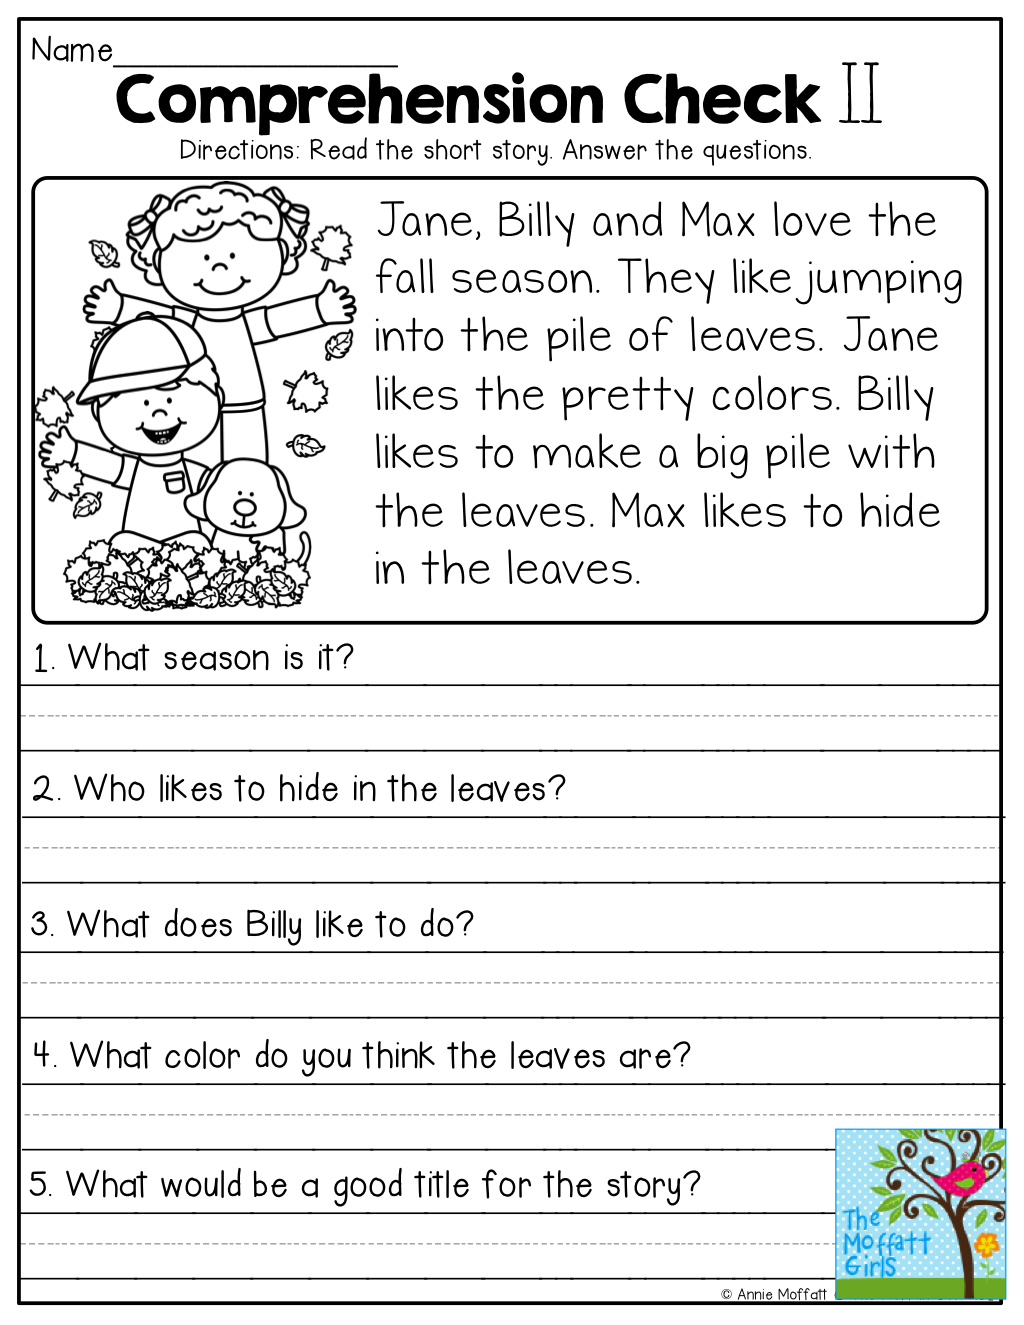 Worksheet Reading Activities For Grade 1 1000 images about first grade reading comprehension on pinterest 3rd teaching and creative